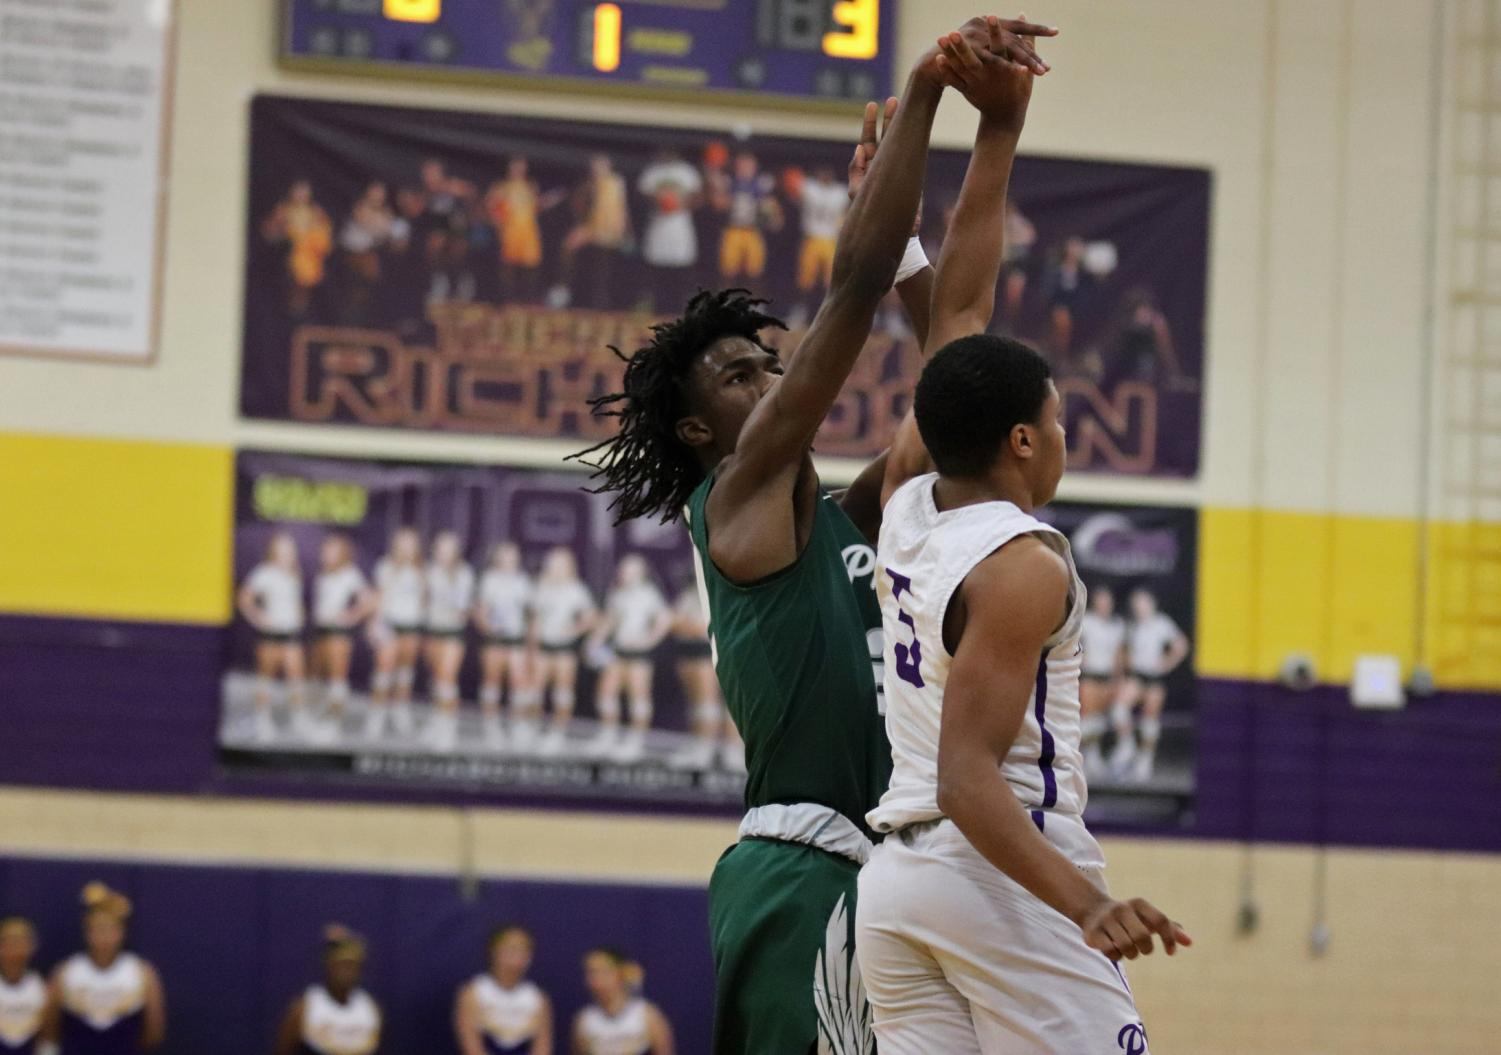 Senior Mondo Battle, No. 22, shoots the ball while a Richardson player attempts to block it. He put up several threes throughout the game. Battle will return Tuesday night against The Colony.